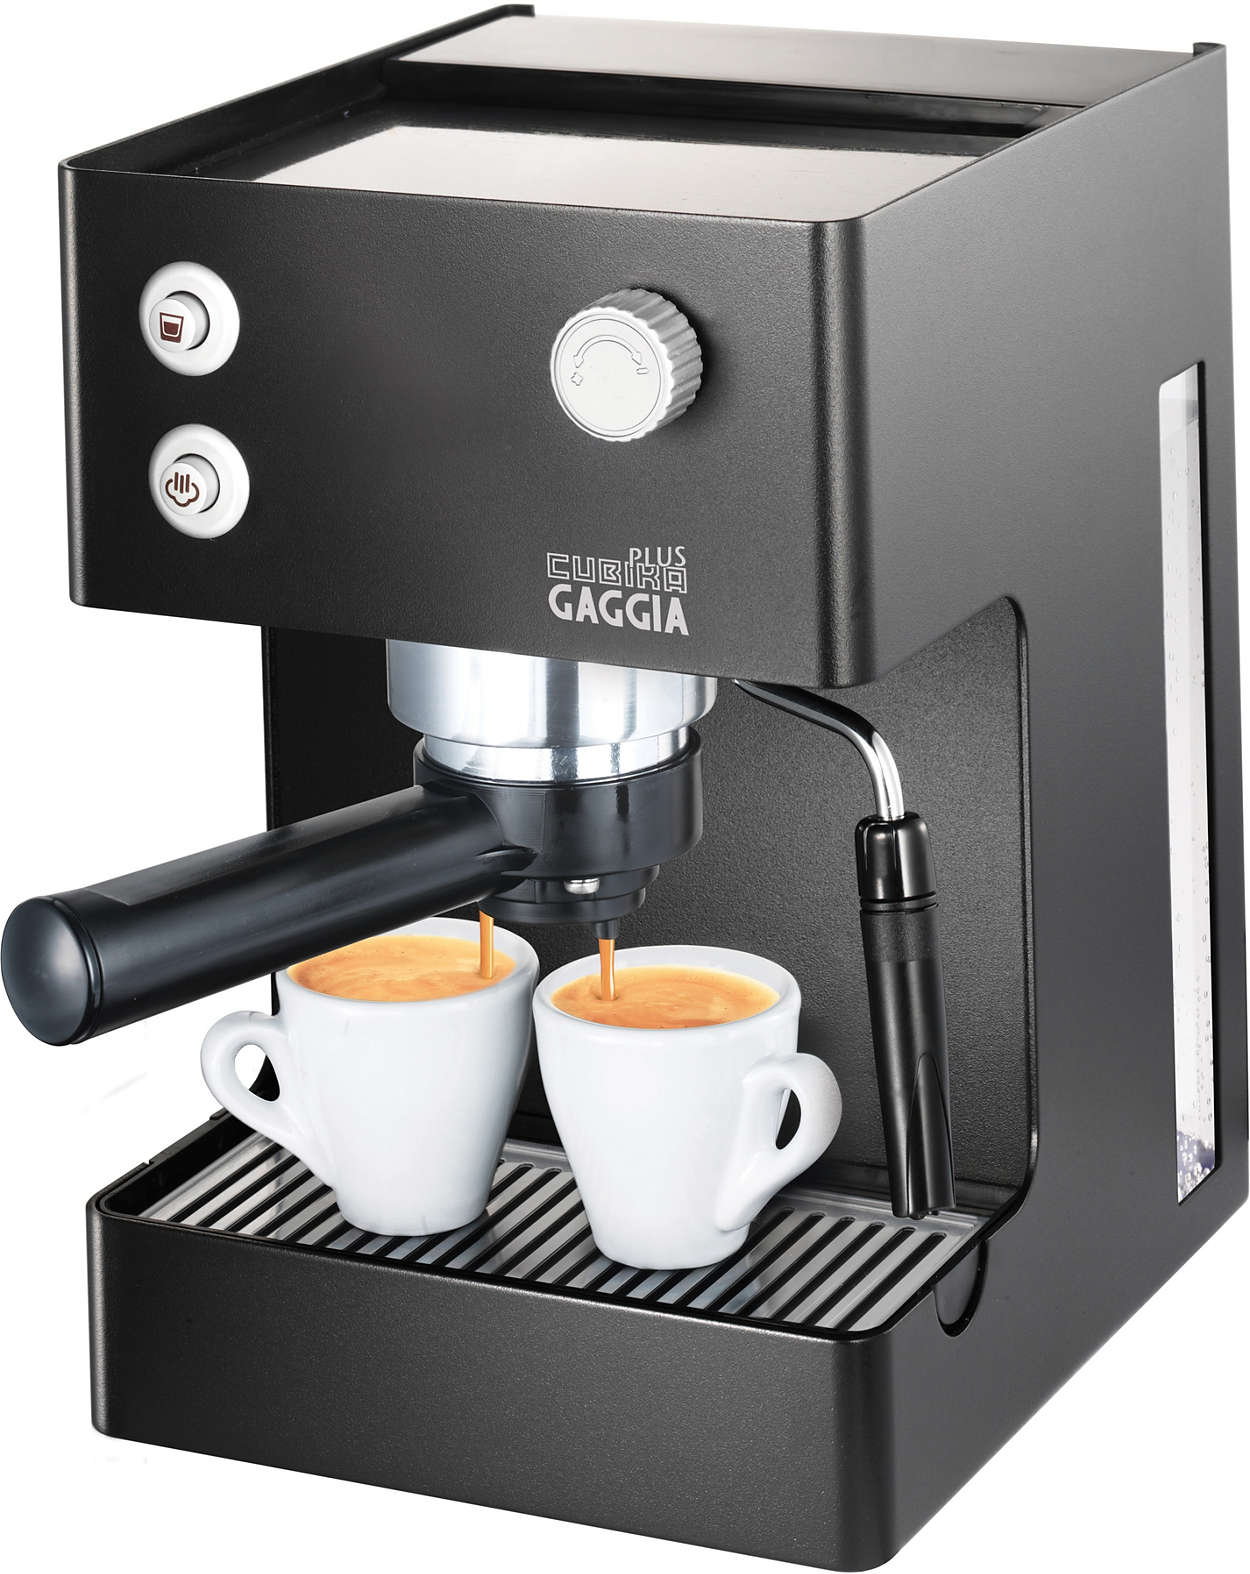 manual espresso machine ri8151 60 gaggia. Black Bedroom Furniture Sets. Home Design Ideas